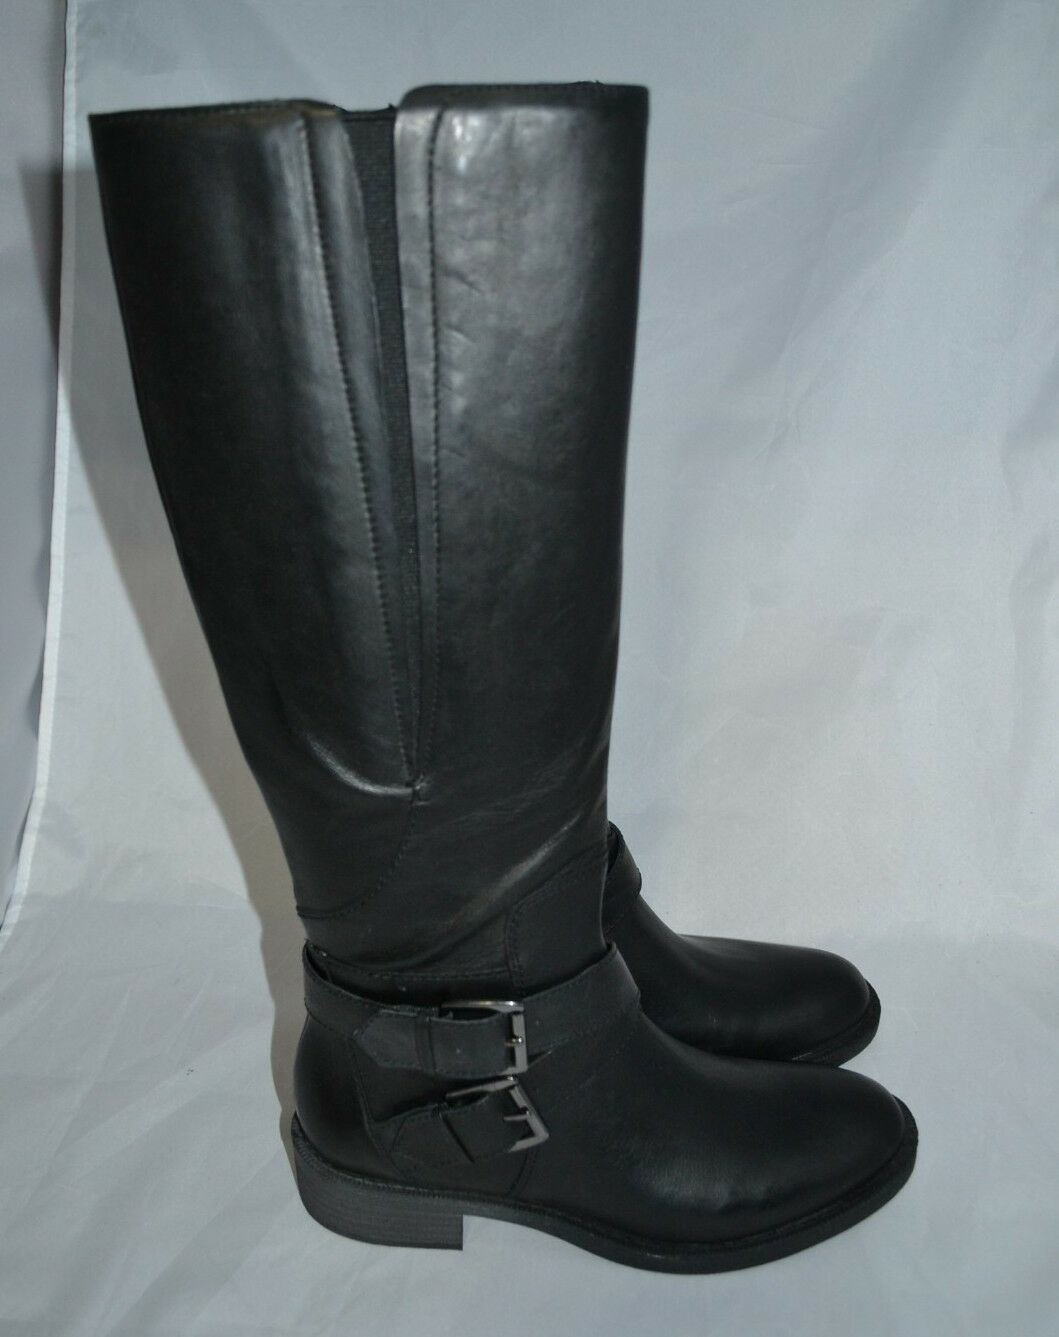 Enzo Angiolini Women BUCKLE SPORTY Black Tall Riding Leather Boots Size 6.5  189